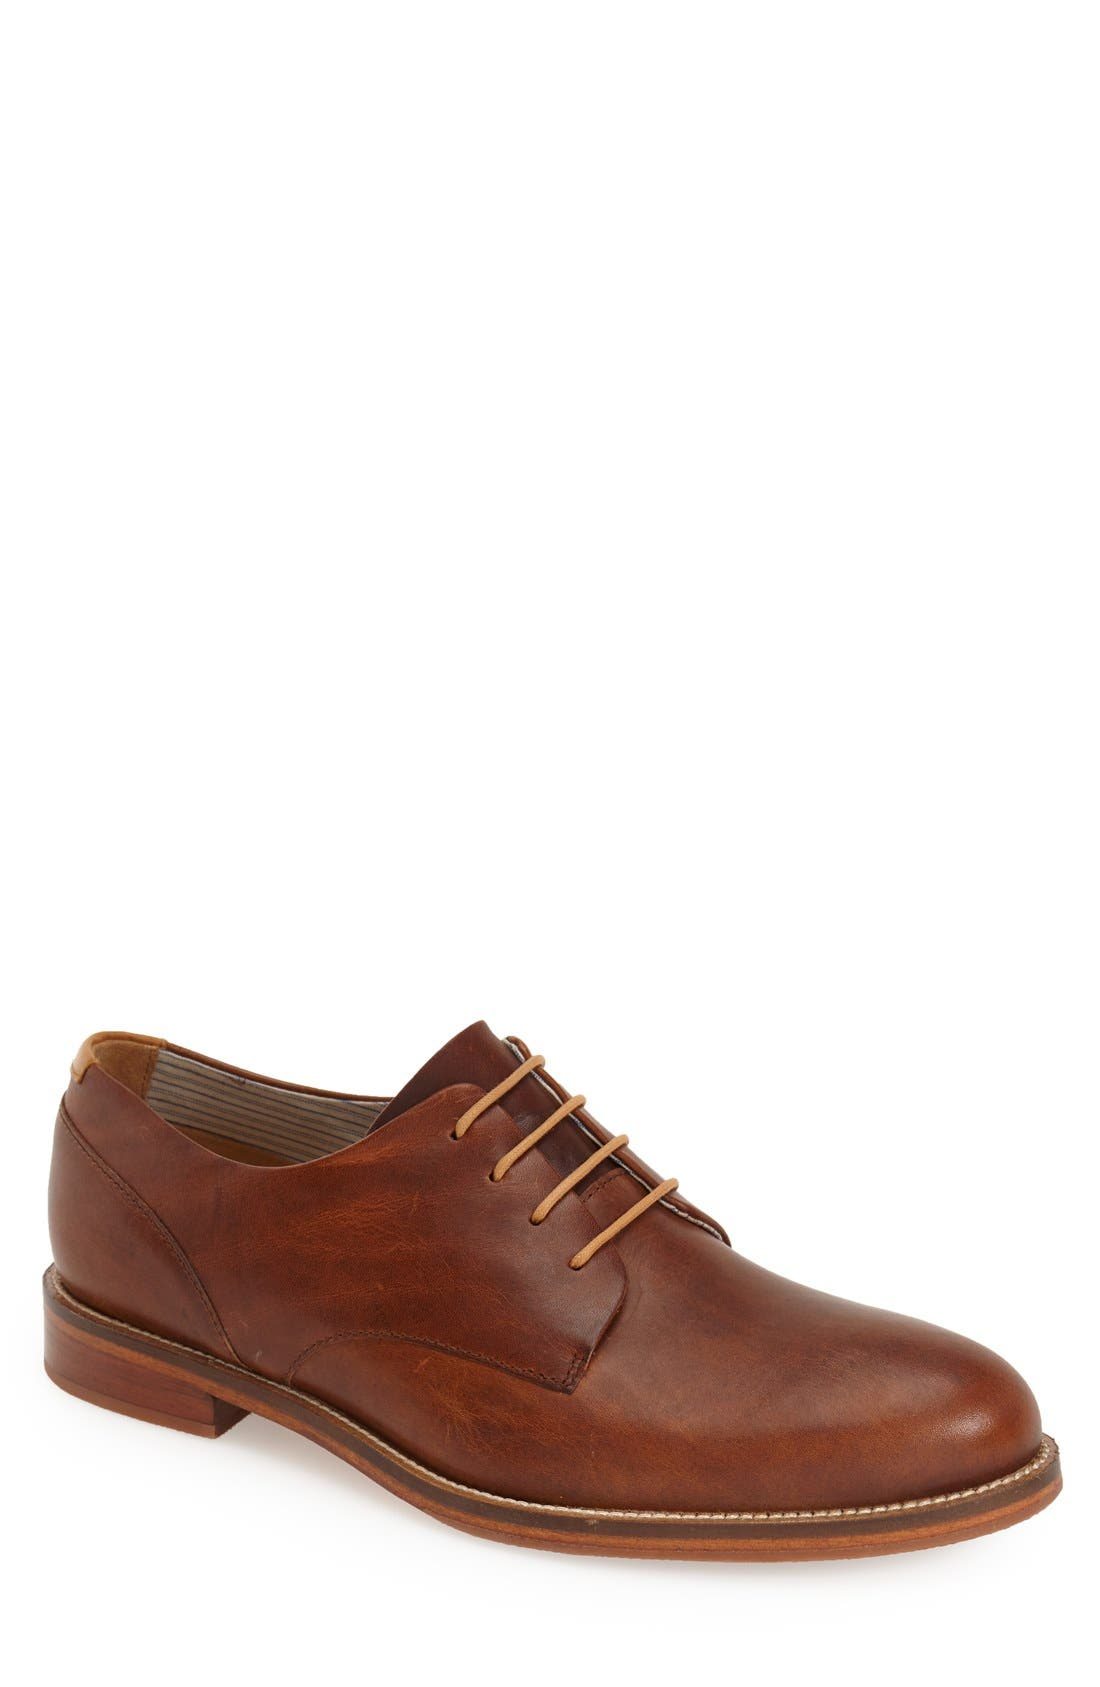 J SHOES William Plus Plain Toe Derby